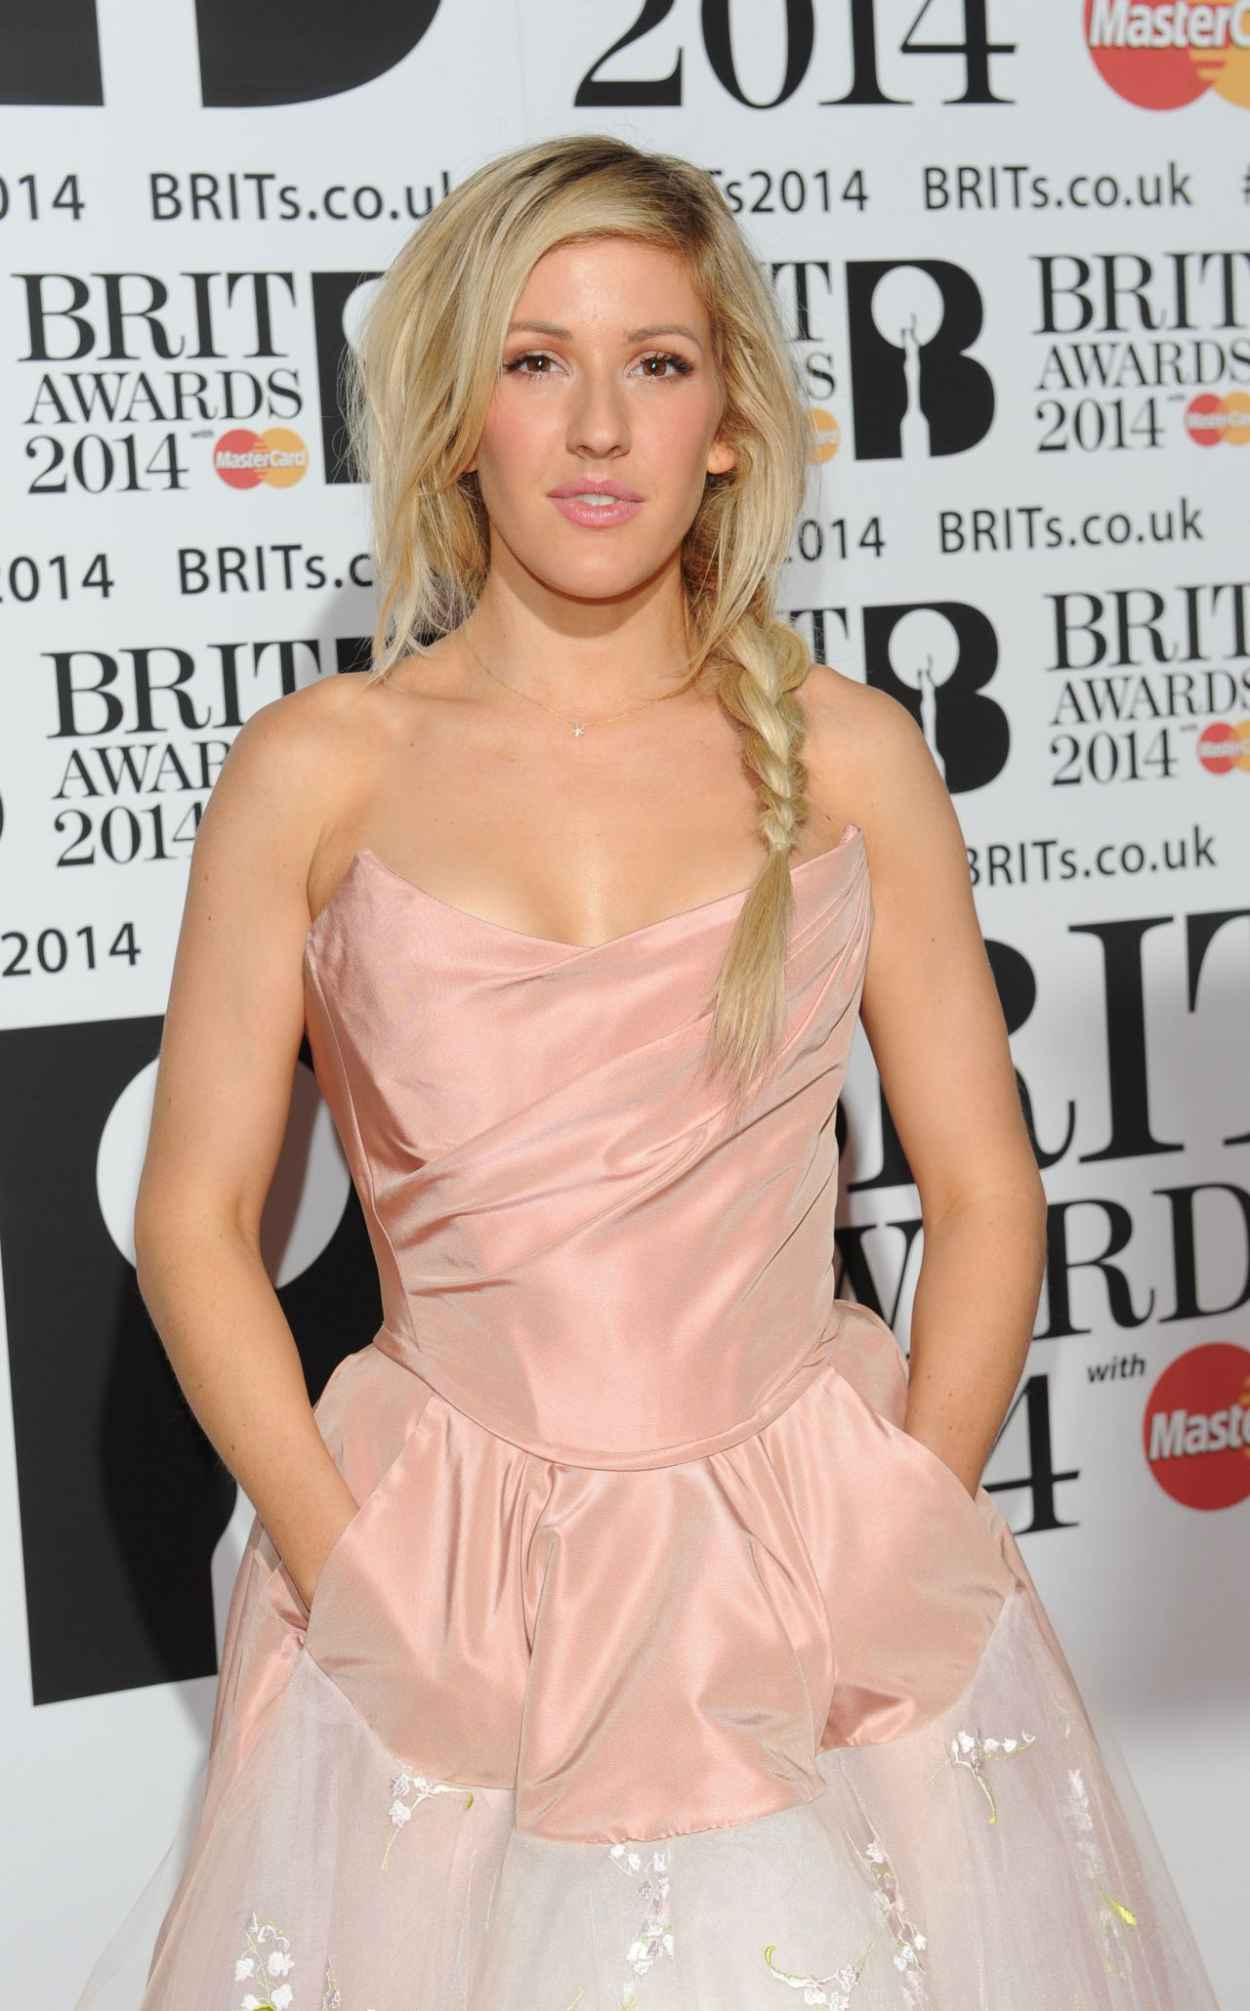 Ellie Goulding Wearing Vivienne Westwood Dress - 2015 BRIT Awards in London-1